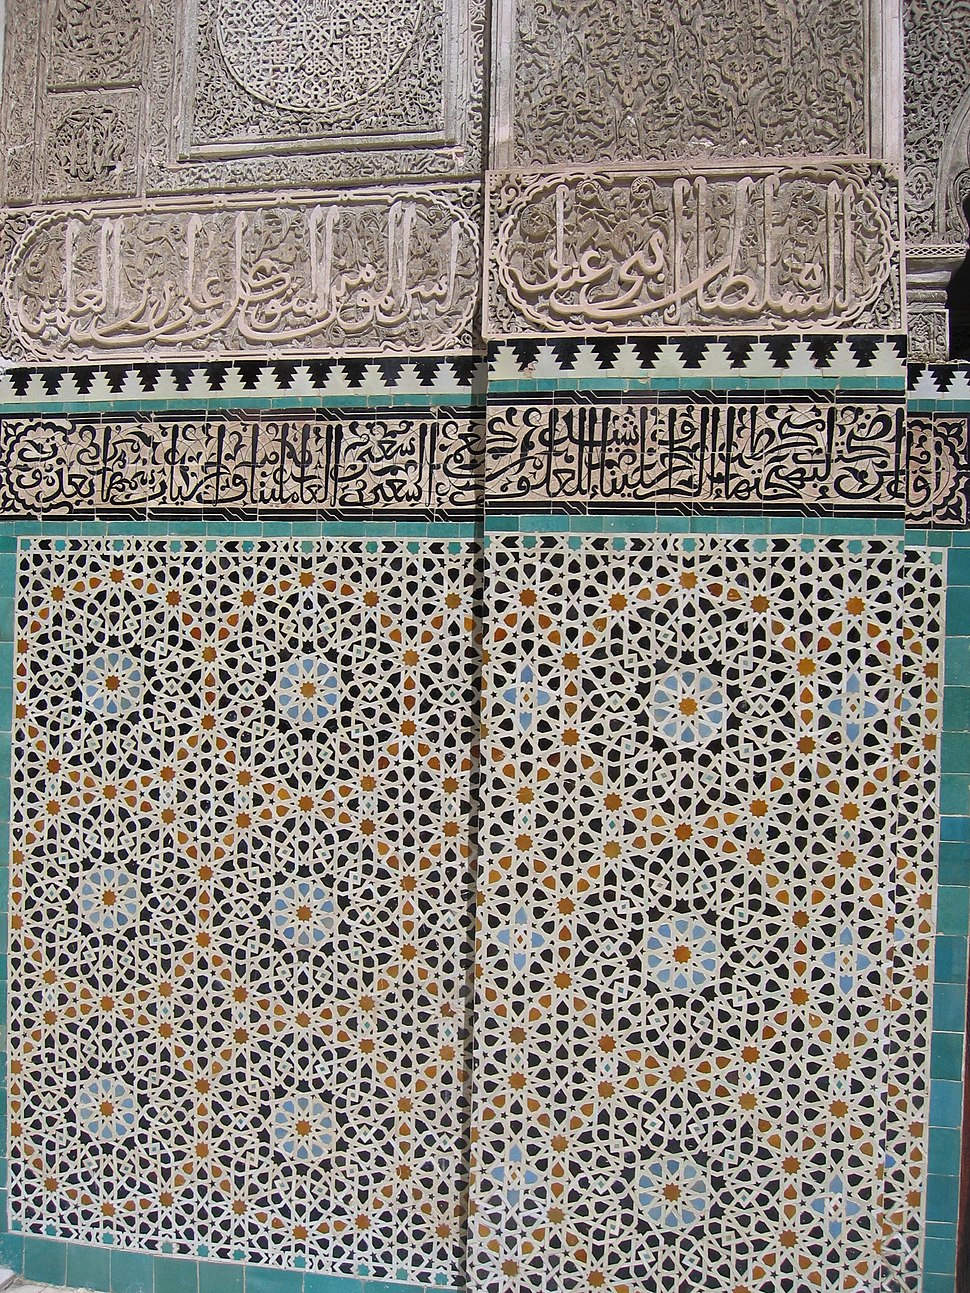 Fes Medersa Bou Inania Mosaique2